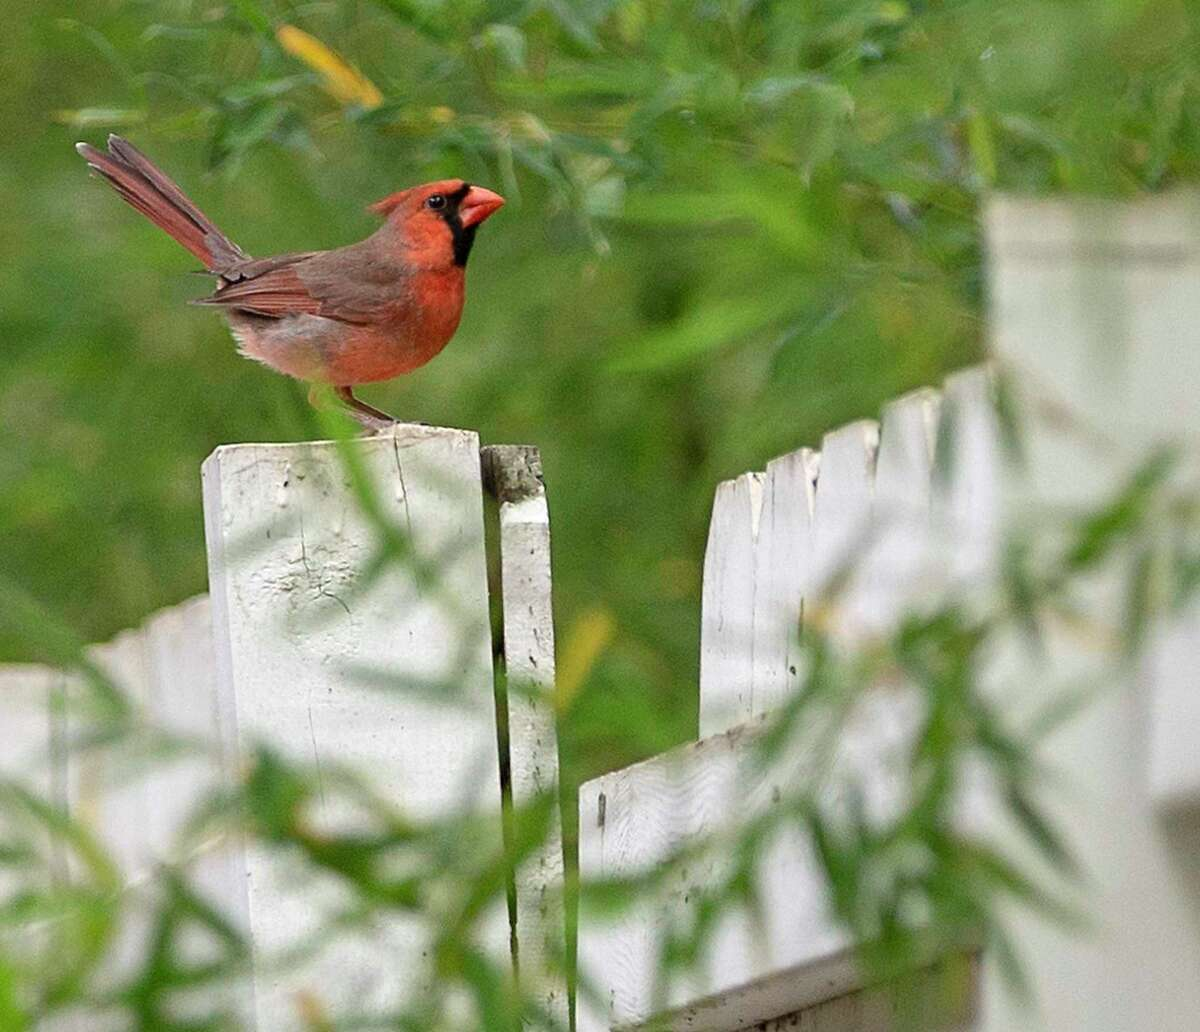 A male cardinal is pictured in San Antonio. Cardinals are common in this area with males being bright red and females being brown with red accents.